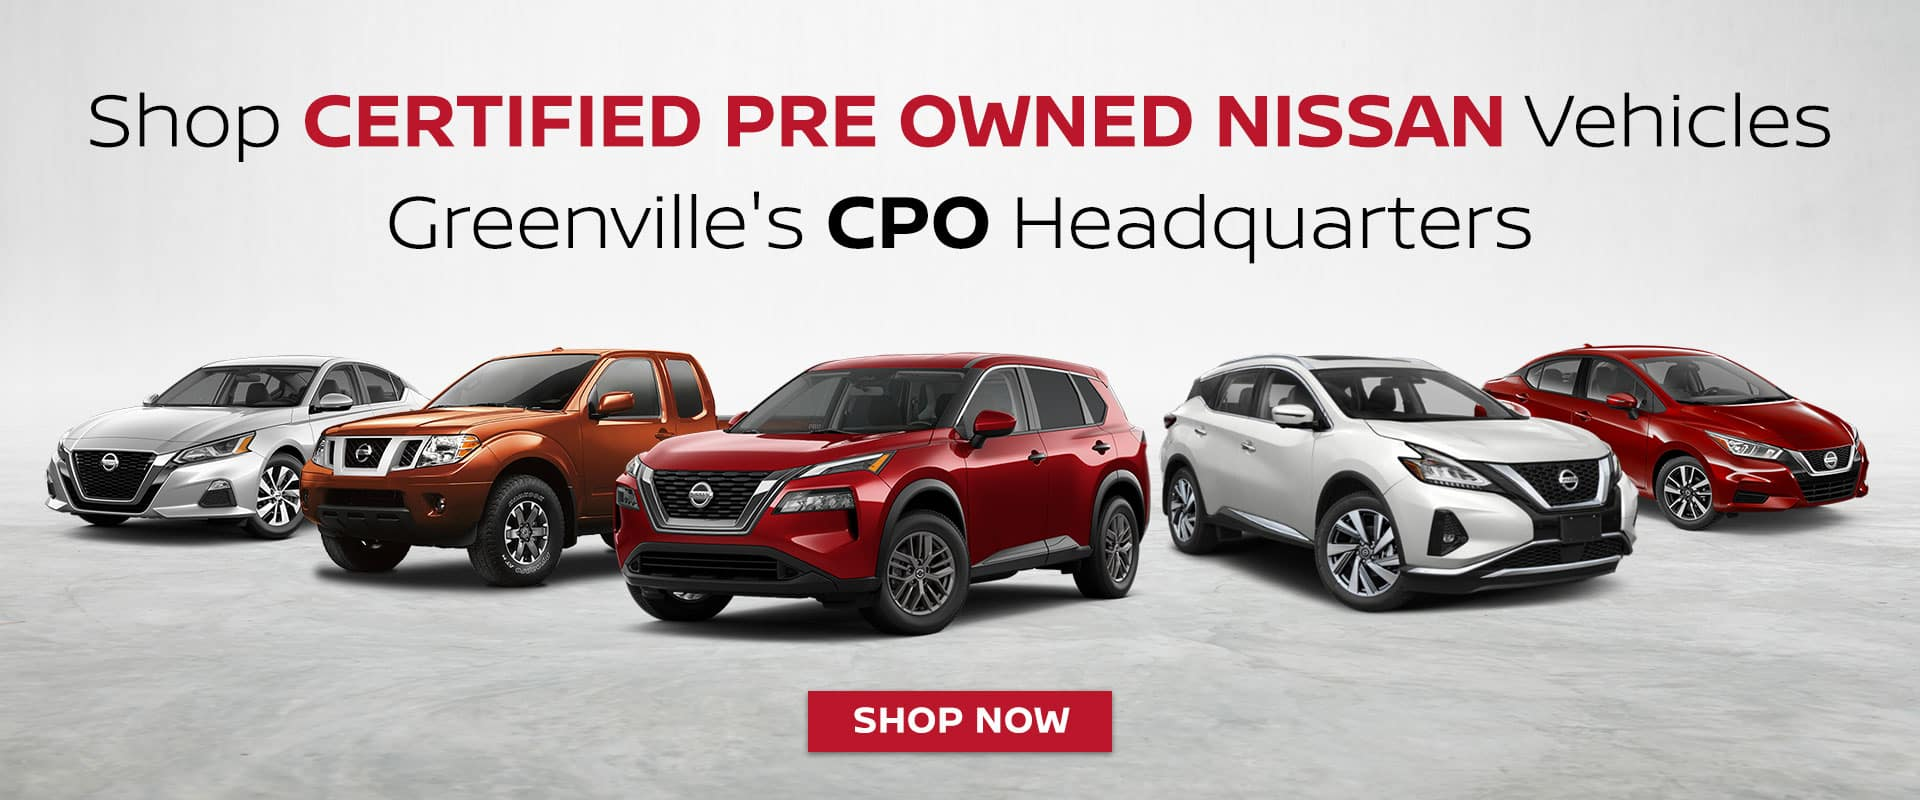 Certified Pre Owned Nissan For Sale In Greenville